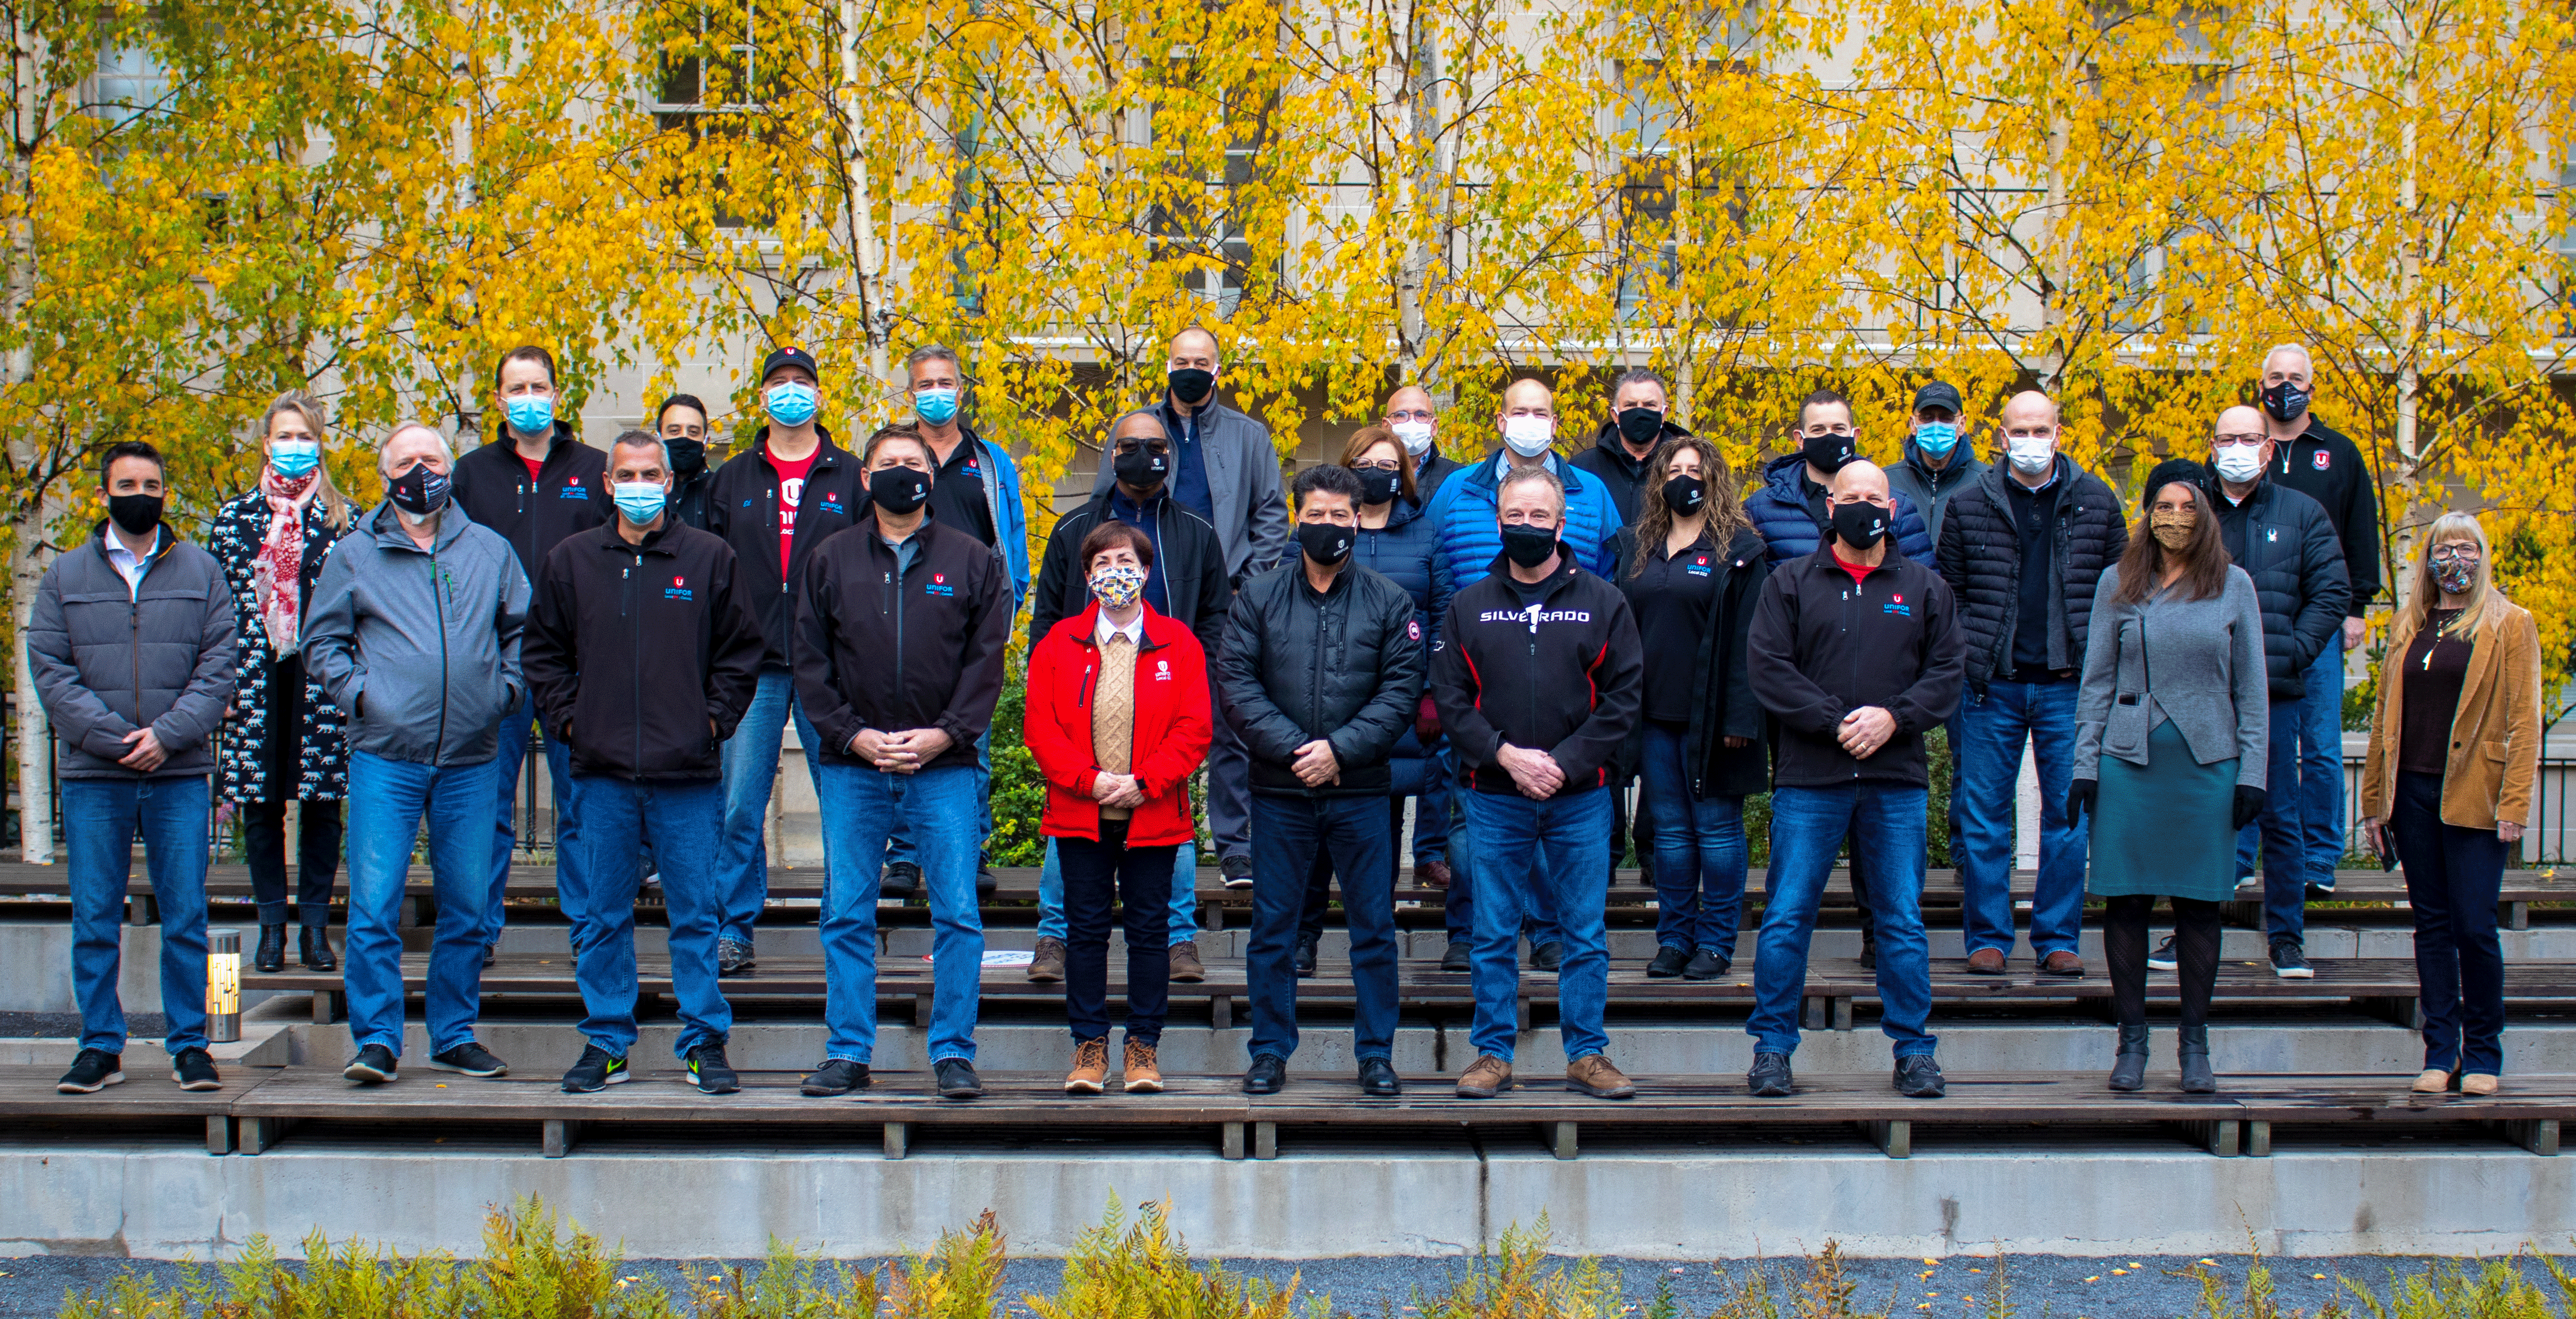 27 members of the GM bargaining committee pose on benched in front of trees.